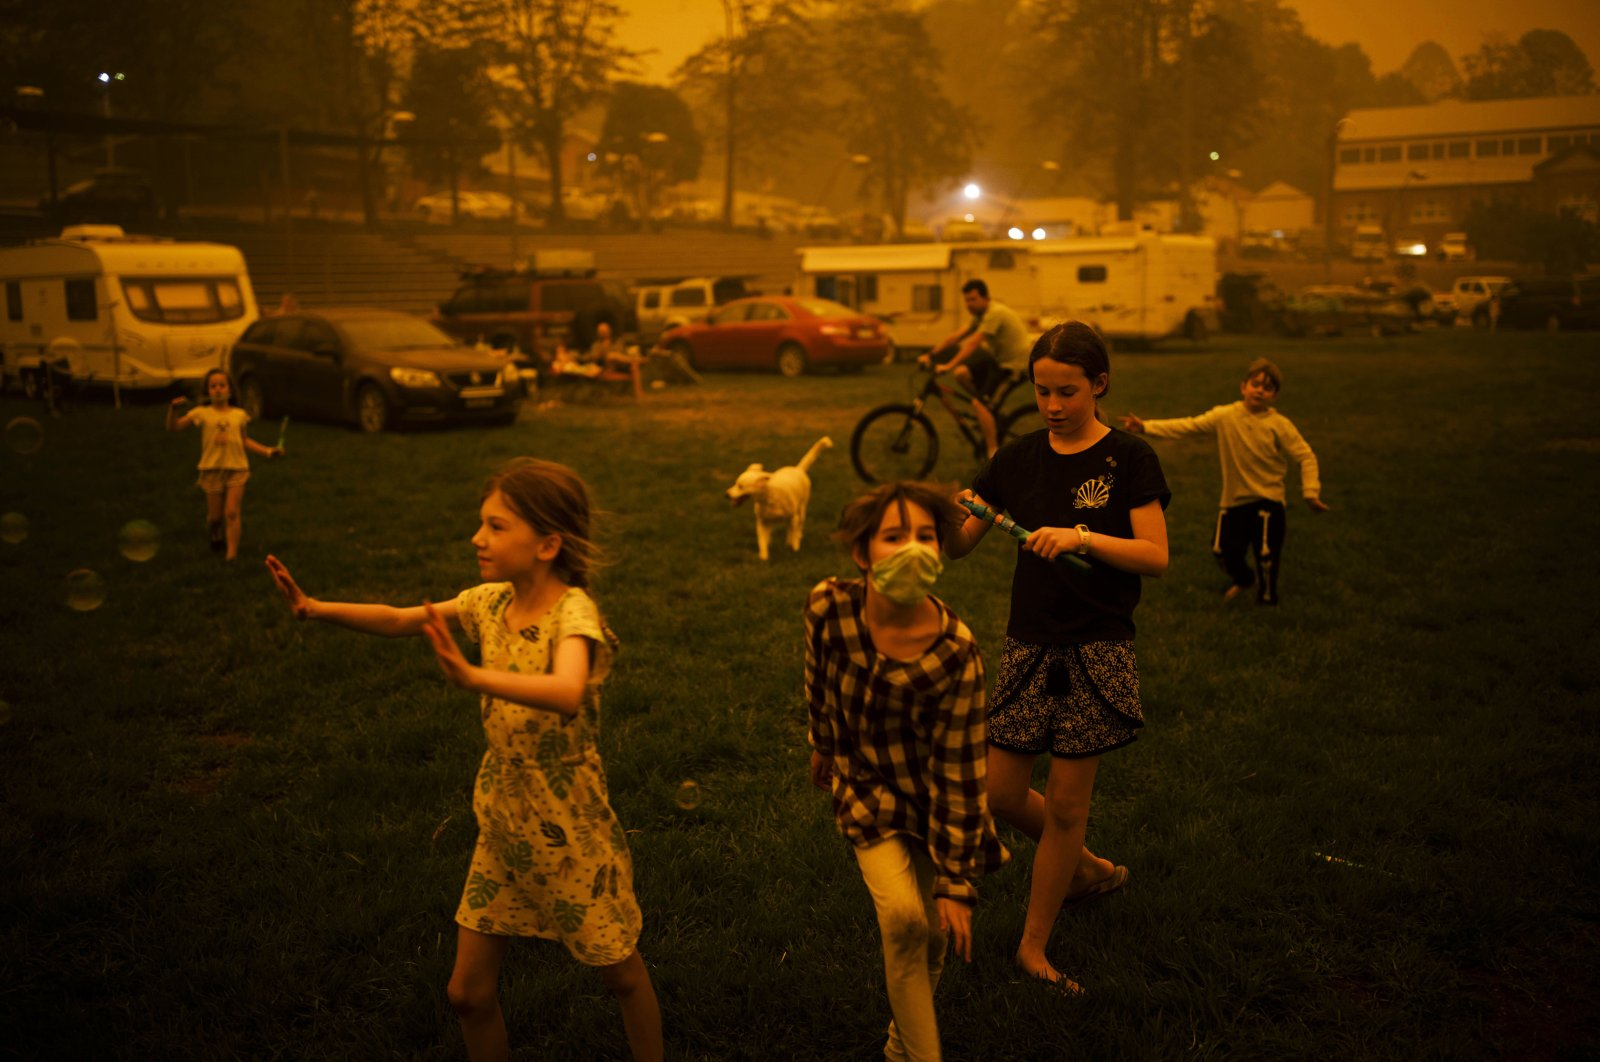 Abigail Ferris (C) plays with friends at a temporary evacuation center for bushfire victims in Bega, New South Wales, Australia, Dec. 31, 2019. (AP Photo)